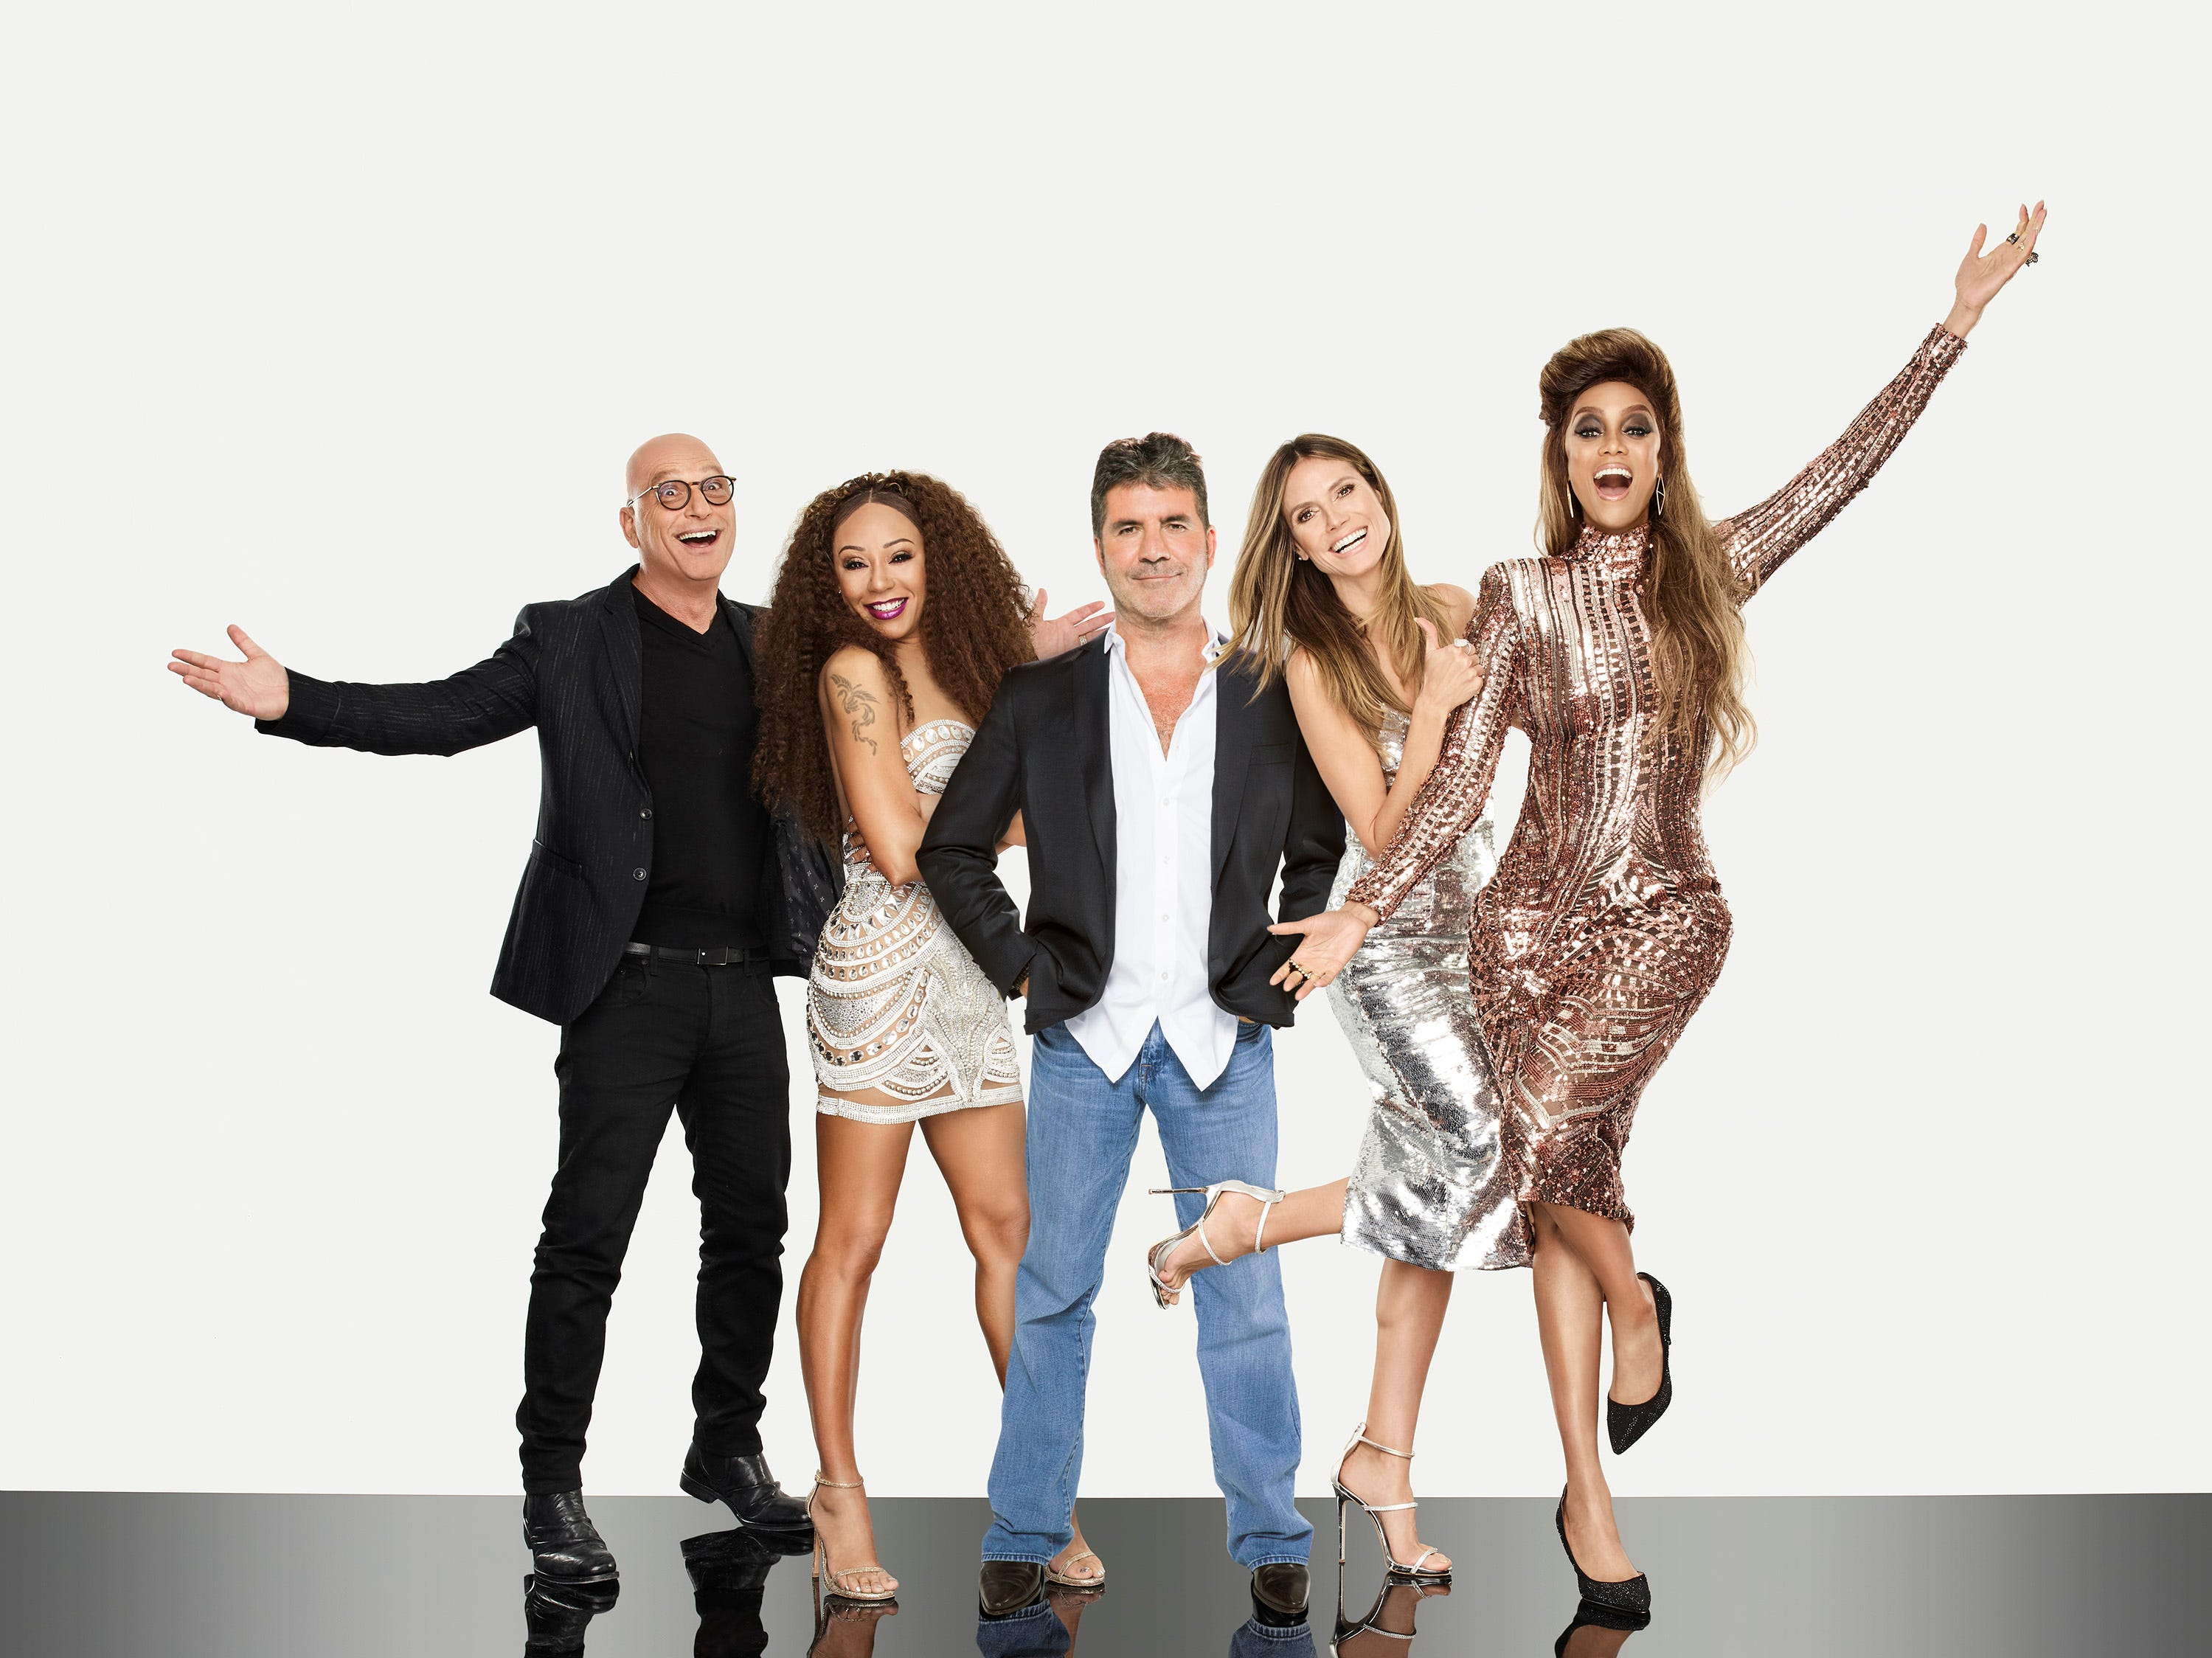 The America's Got Talent crew (from left, Howie Mandel, Mel B, Heidi Klum and Tyra Banks) have finally narrowed down their picks. Who has made it through so far?